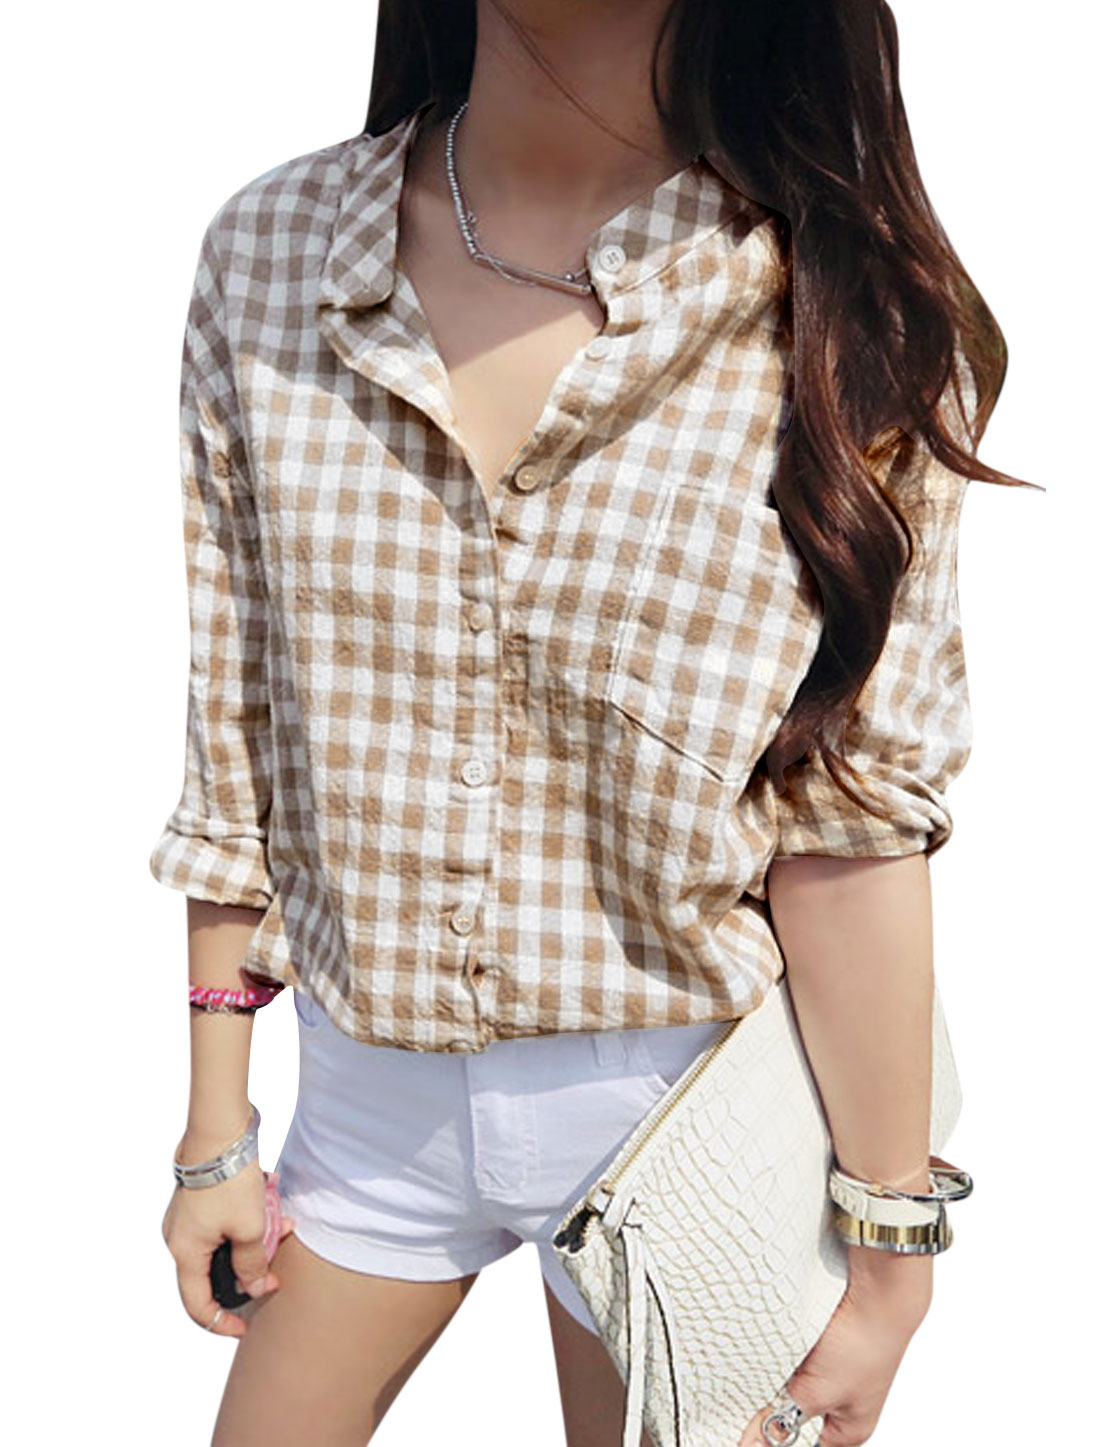 Women Plaids Pattern Single Breasted Bust Pocket Round Hem Shirt Camel White S